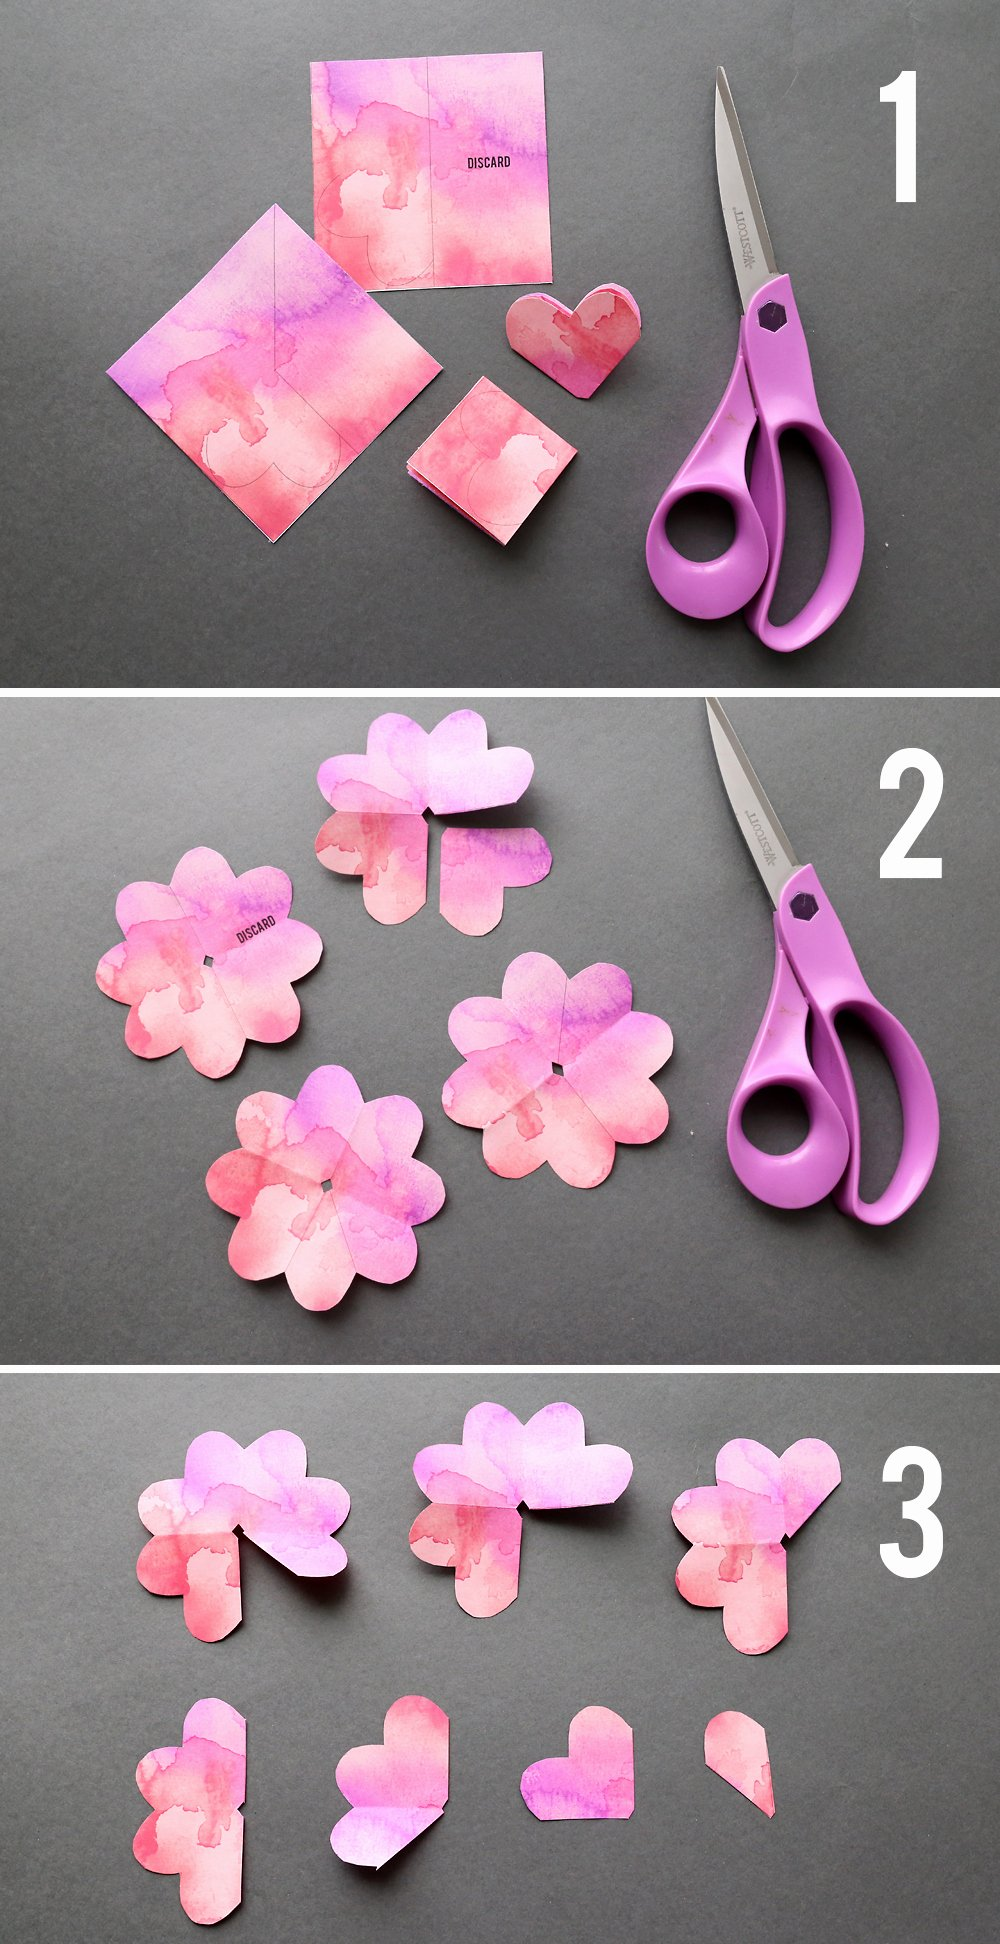 Paper Rose Template Printable Fresh Make Gorgeous Paper Roses with This Free Paper Rose